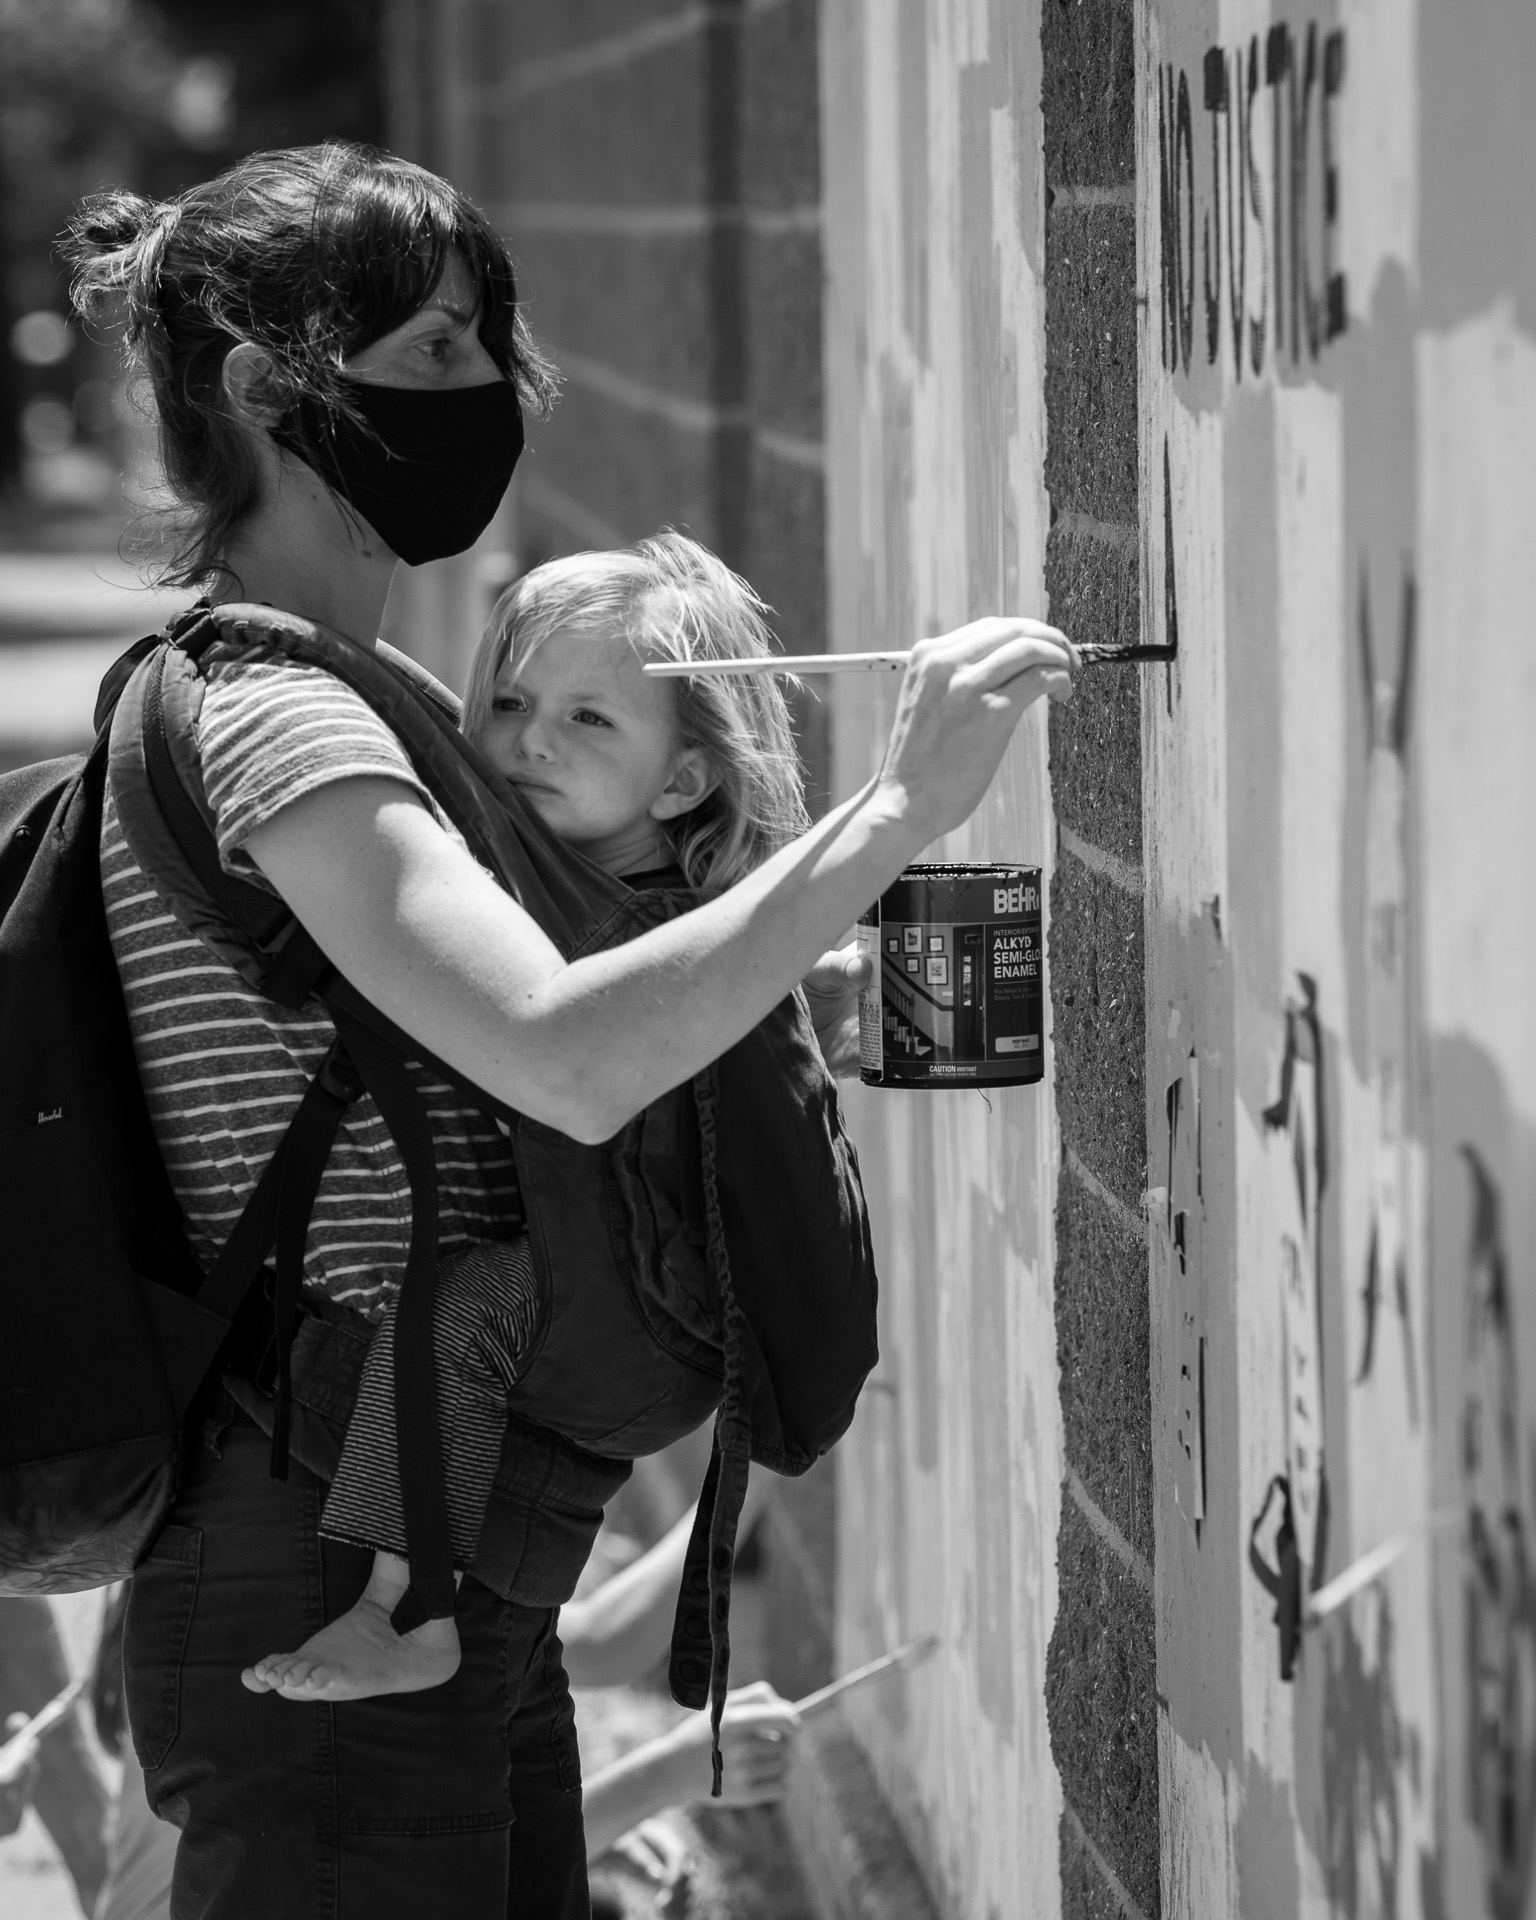 Street photography by Tom Dunn.